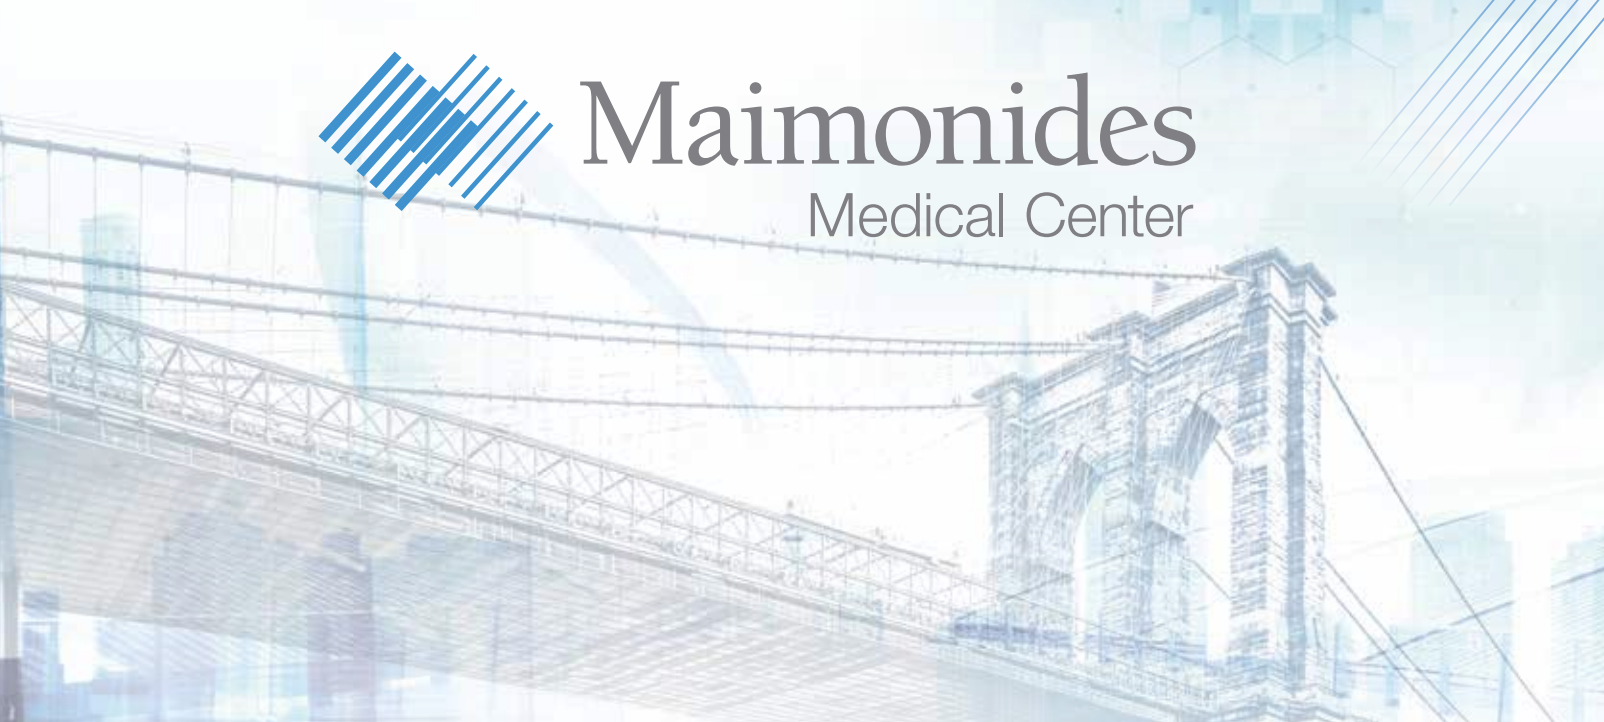 Maimonides Medical Center logo with Brooklyn Bridge background